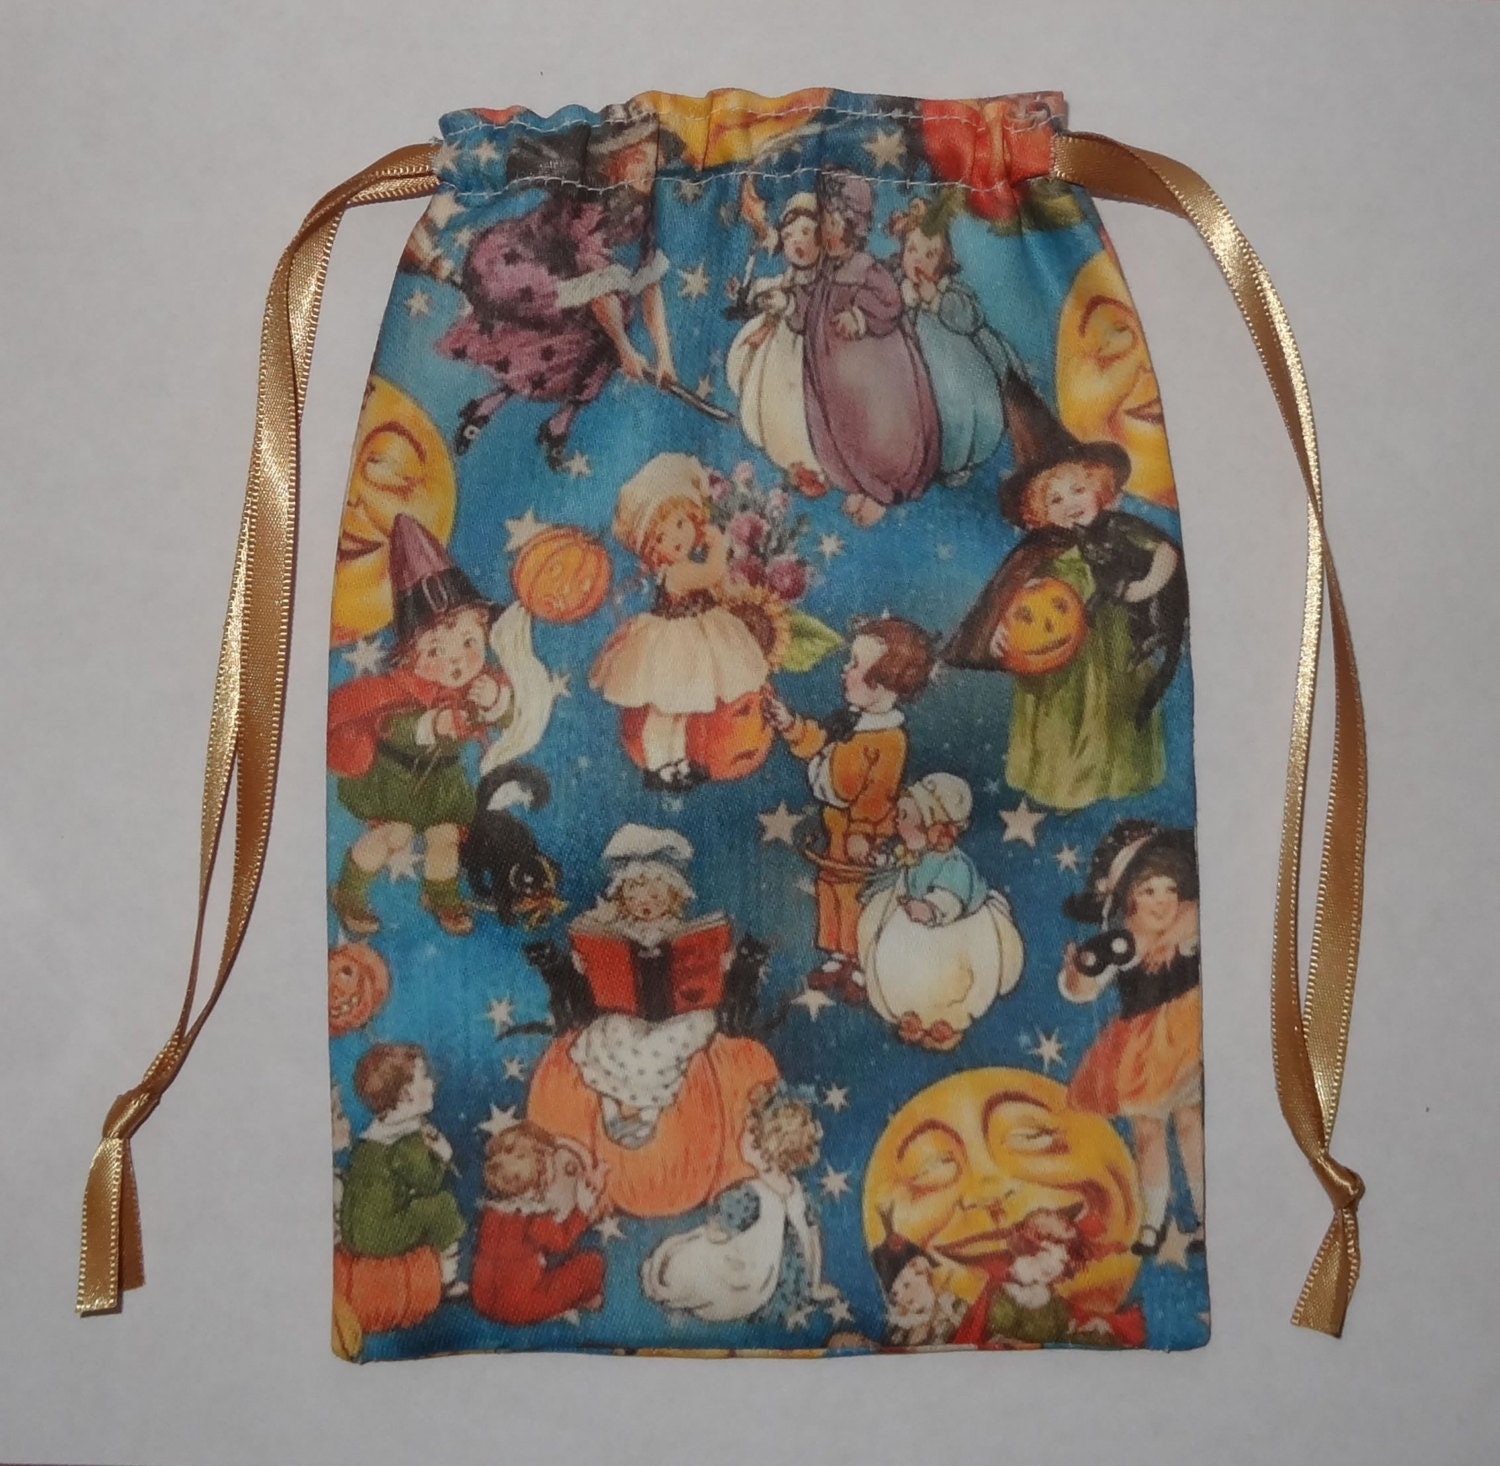 Retro Vintage Halloween Tarot Card Bag Ideal For Most Angel